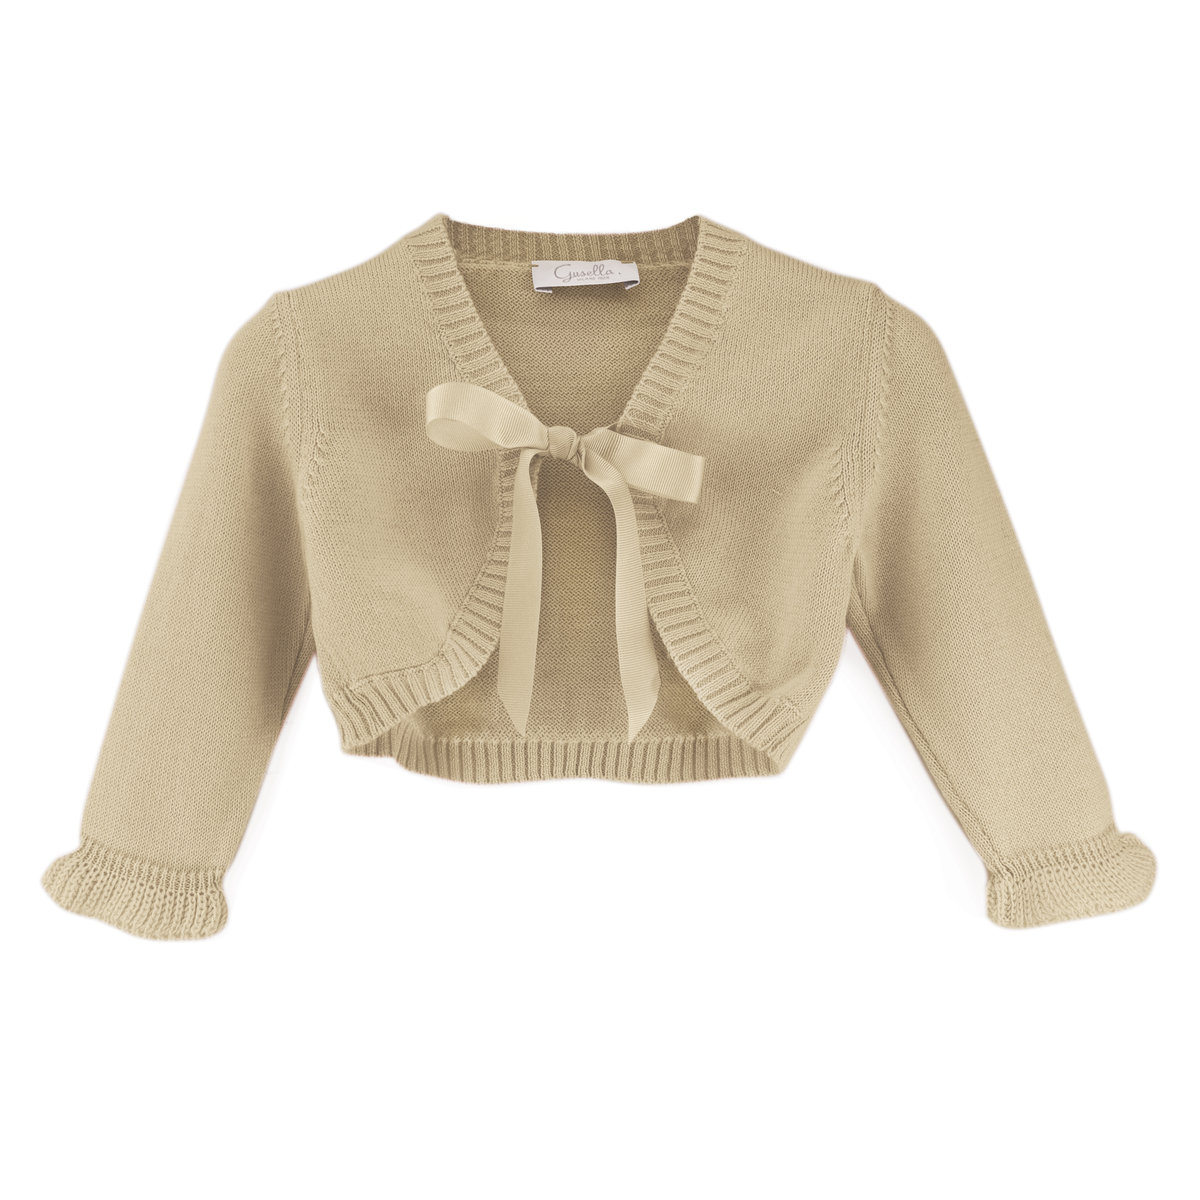 best website f18ff 8a465 Gusella | BABY GIRL'S ANGELICA SCALDACUORE | Color : Beige ...